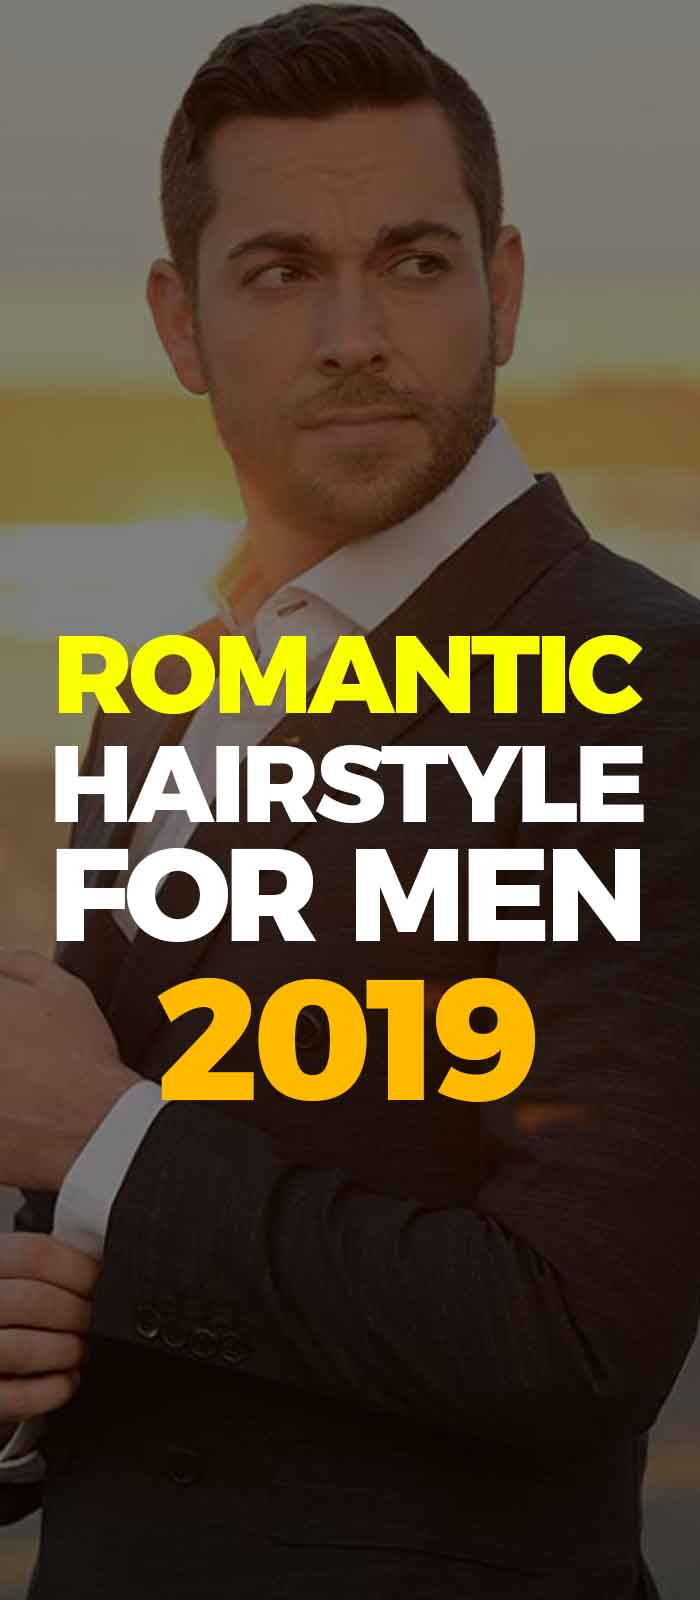 Romantic Hairstyle For Men